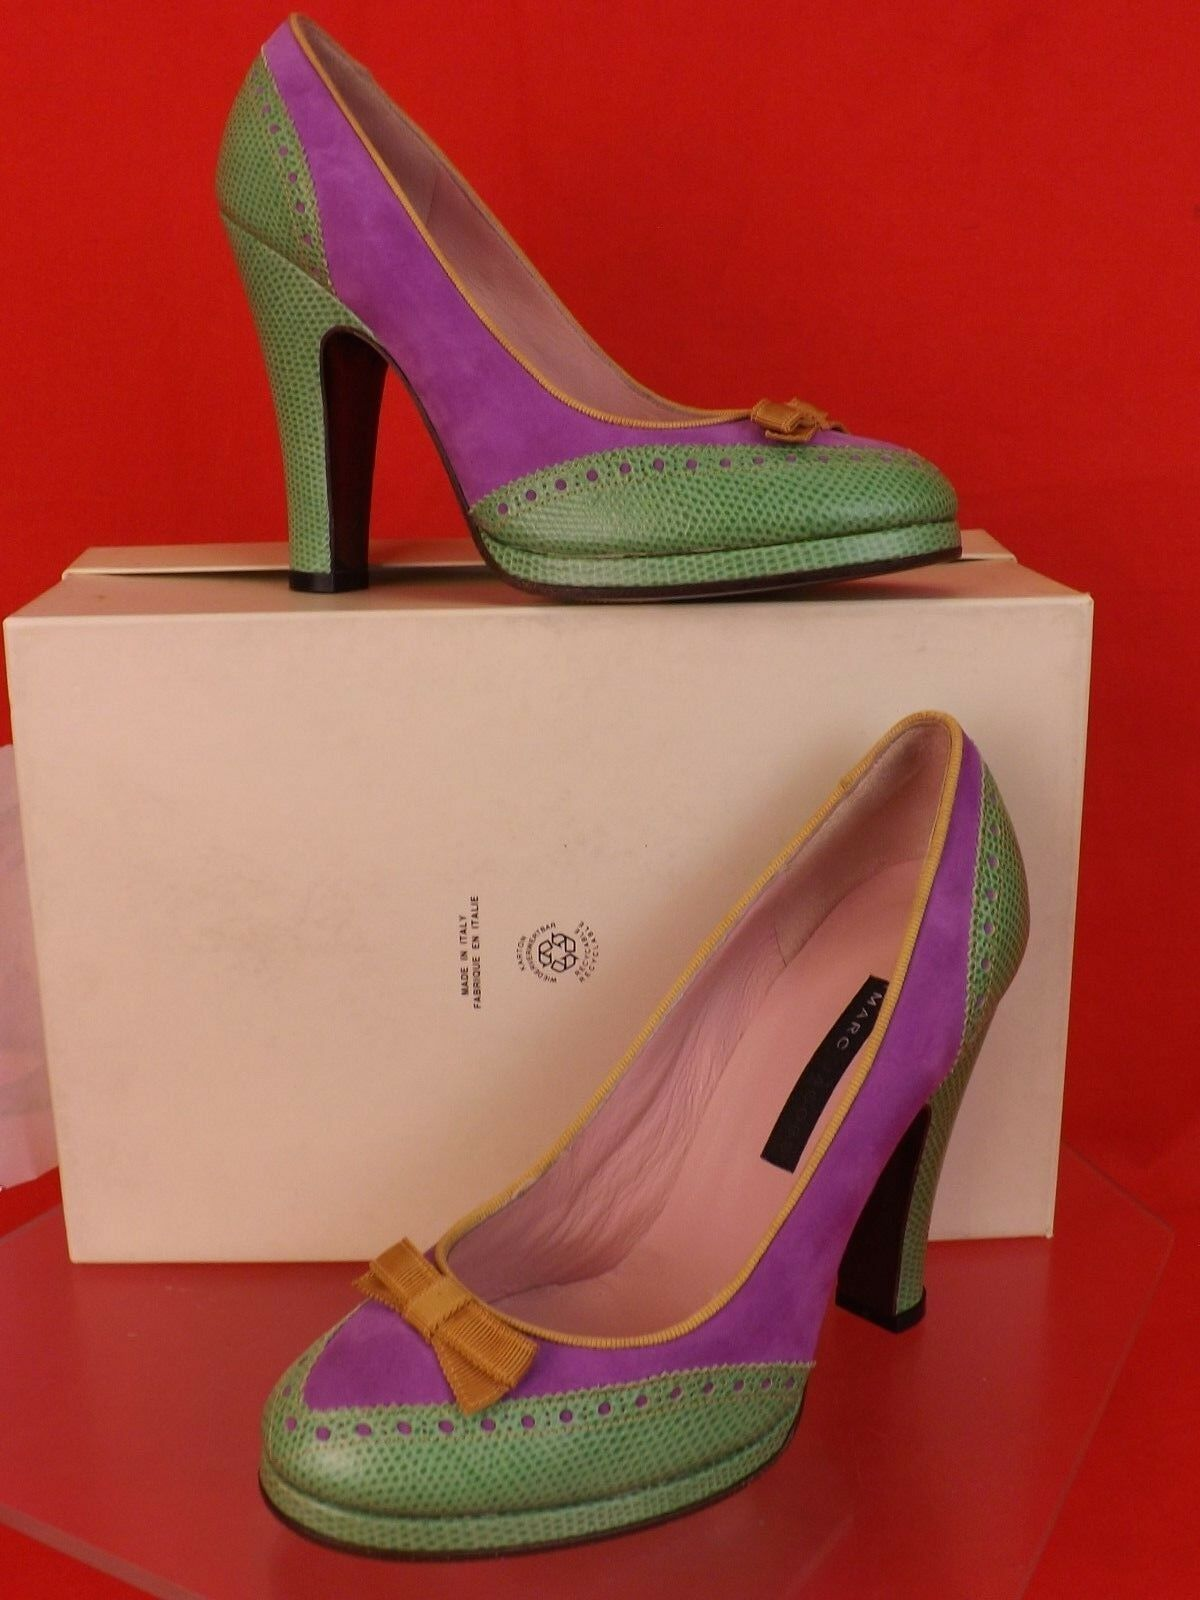 NEW MARC JACOBS COLOR BLOCK PERFORATED SNAKE PRINT SUEDE BOW PLATFORM PUMPS 37